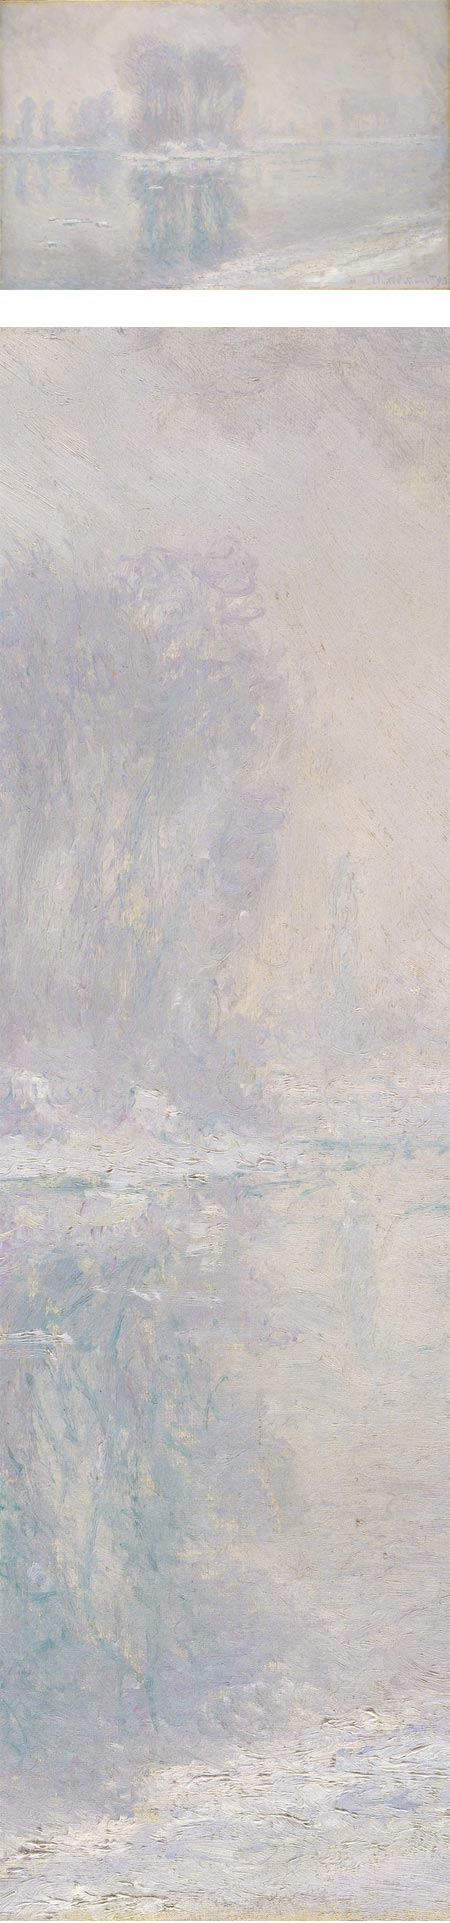 Ice Floes, Claude Monet